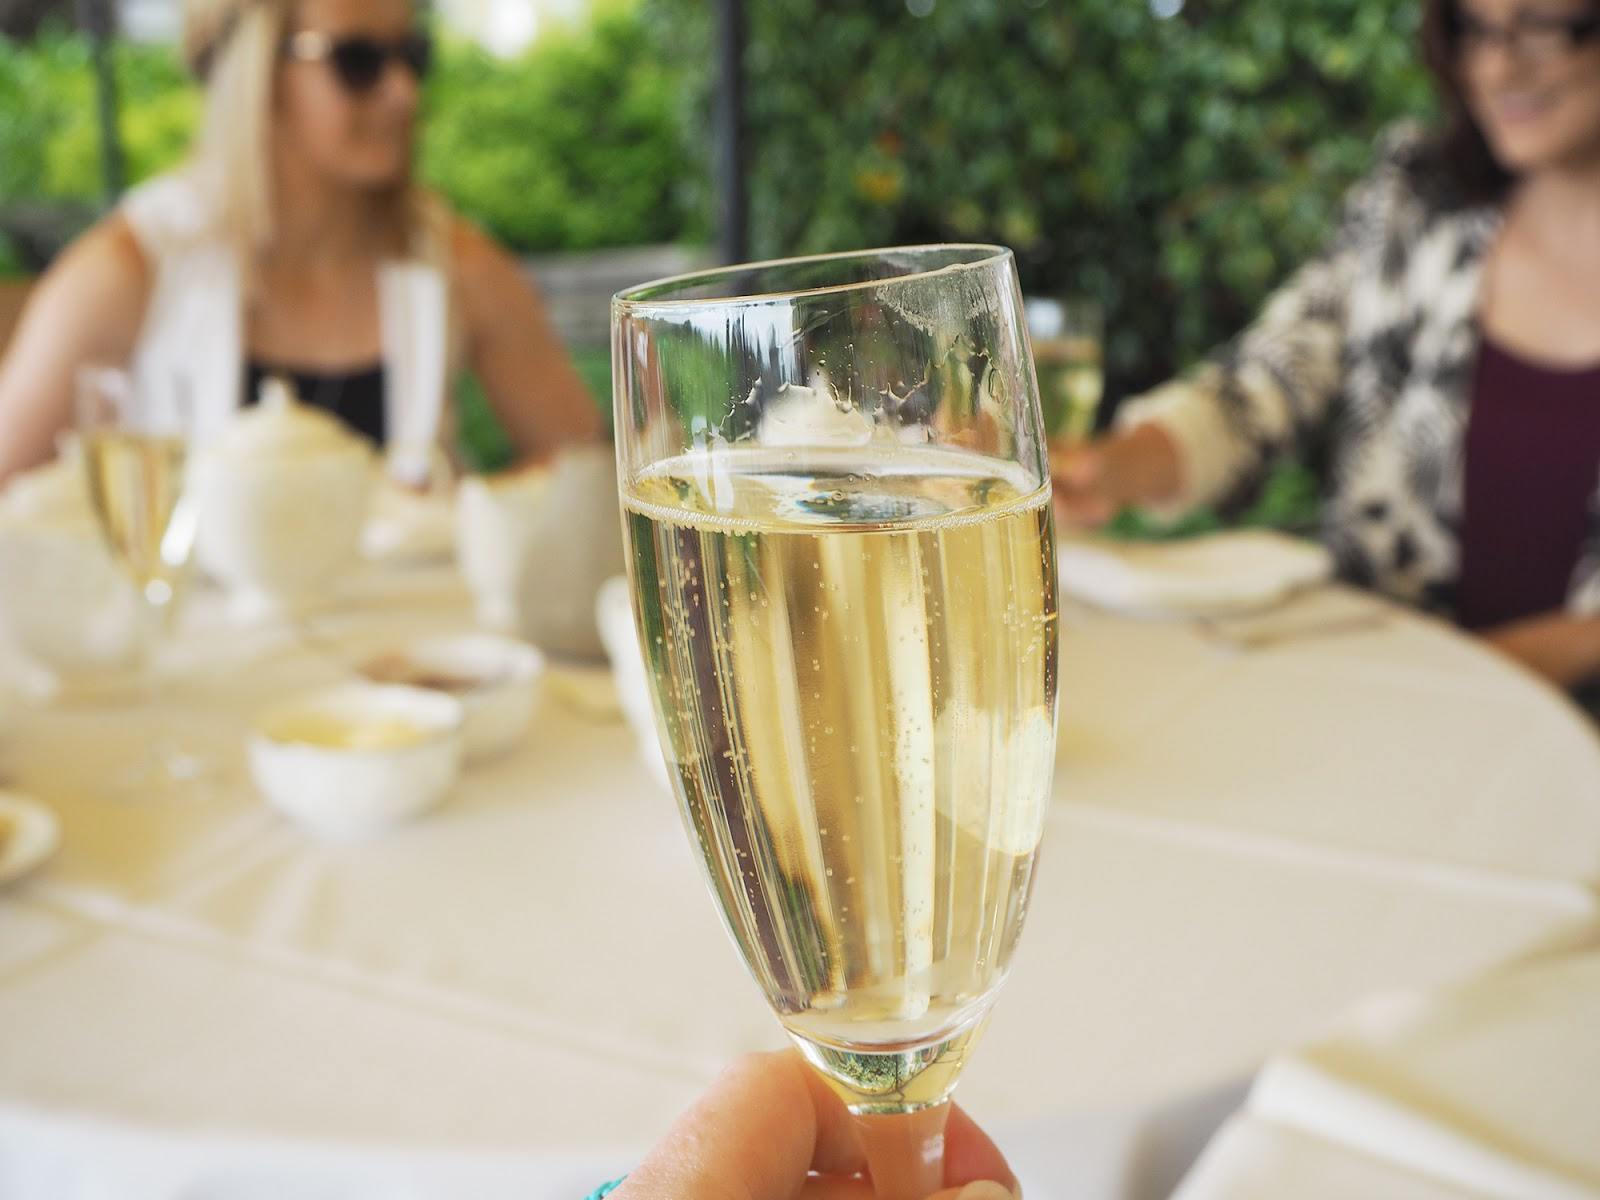 Afternoon tea review at South Lodge in Horsham - champagne